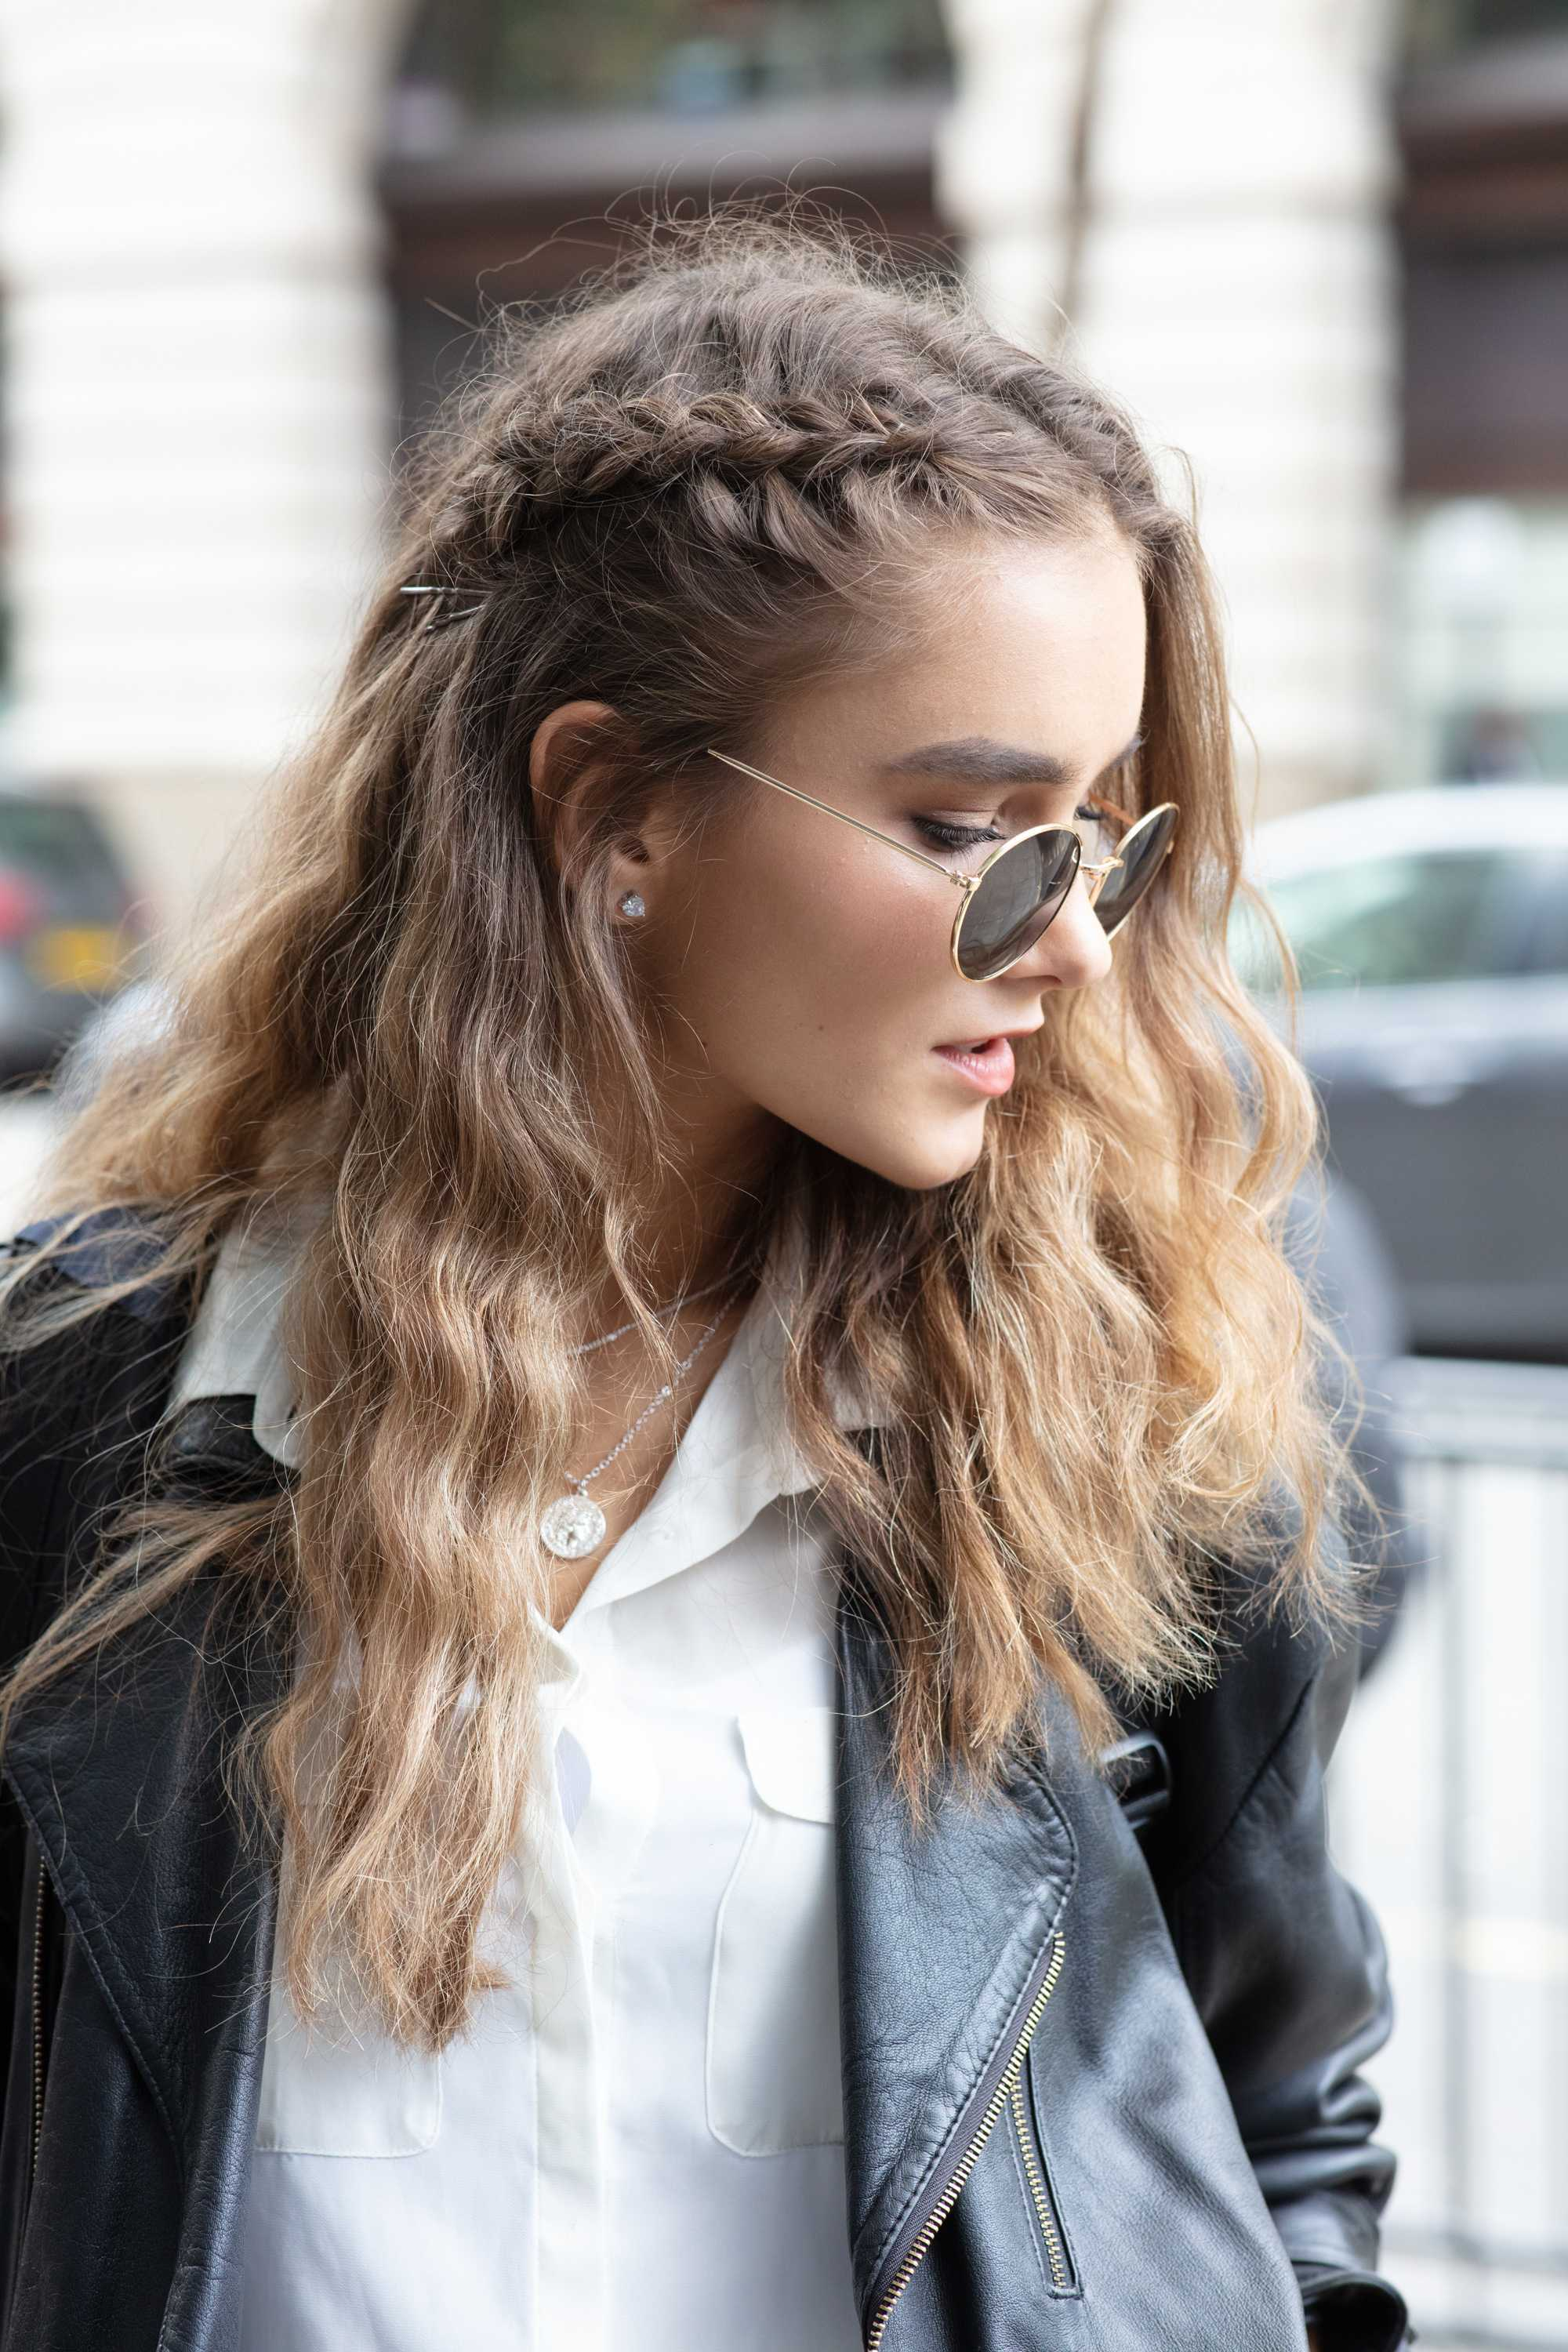 Long hair ideas: Shot of woman with long wavy light brown hair with a side braid, wearing sunglasses and black jacket at LFW